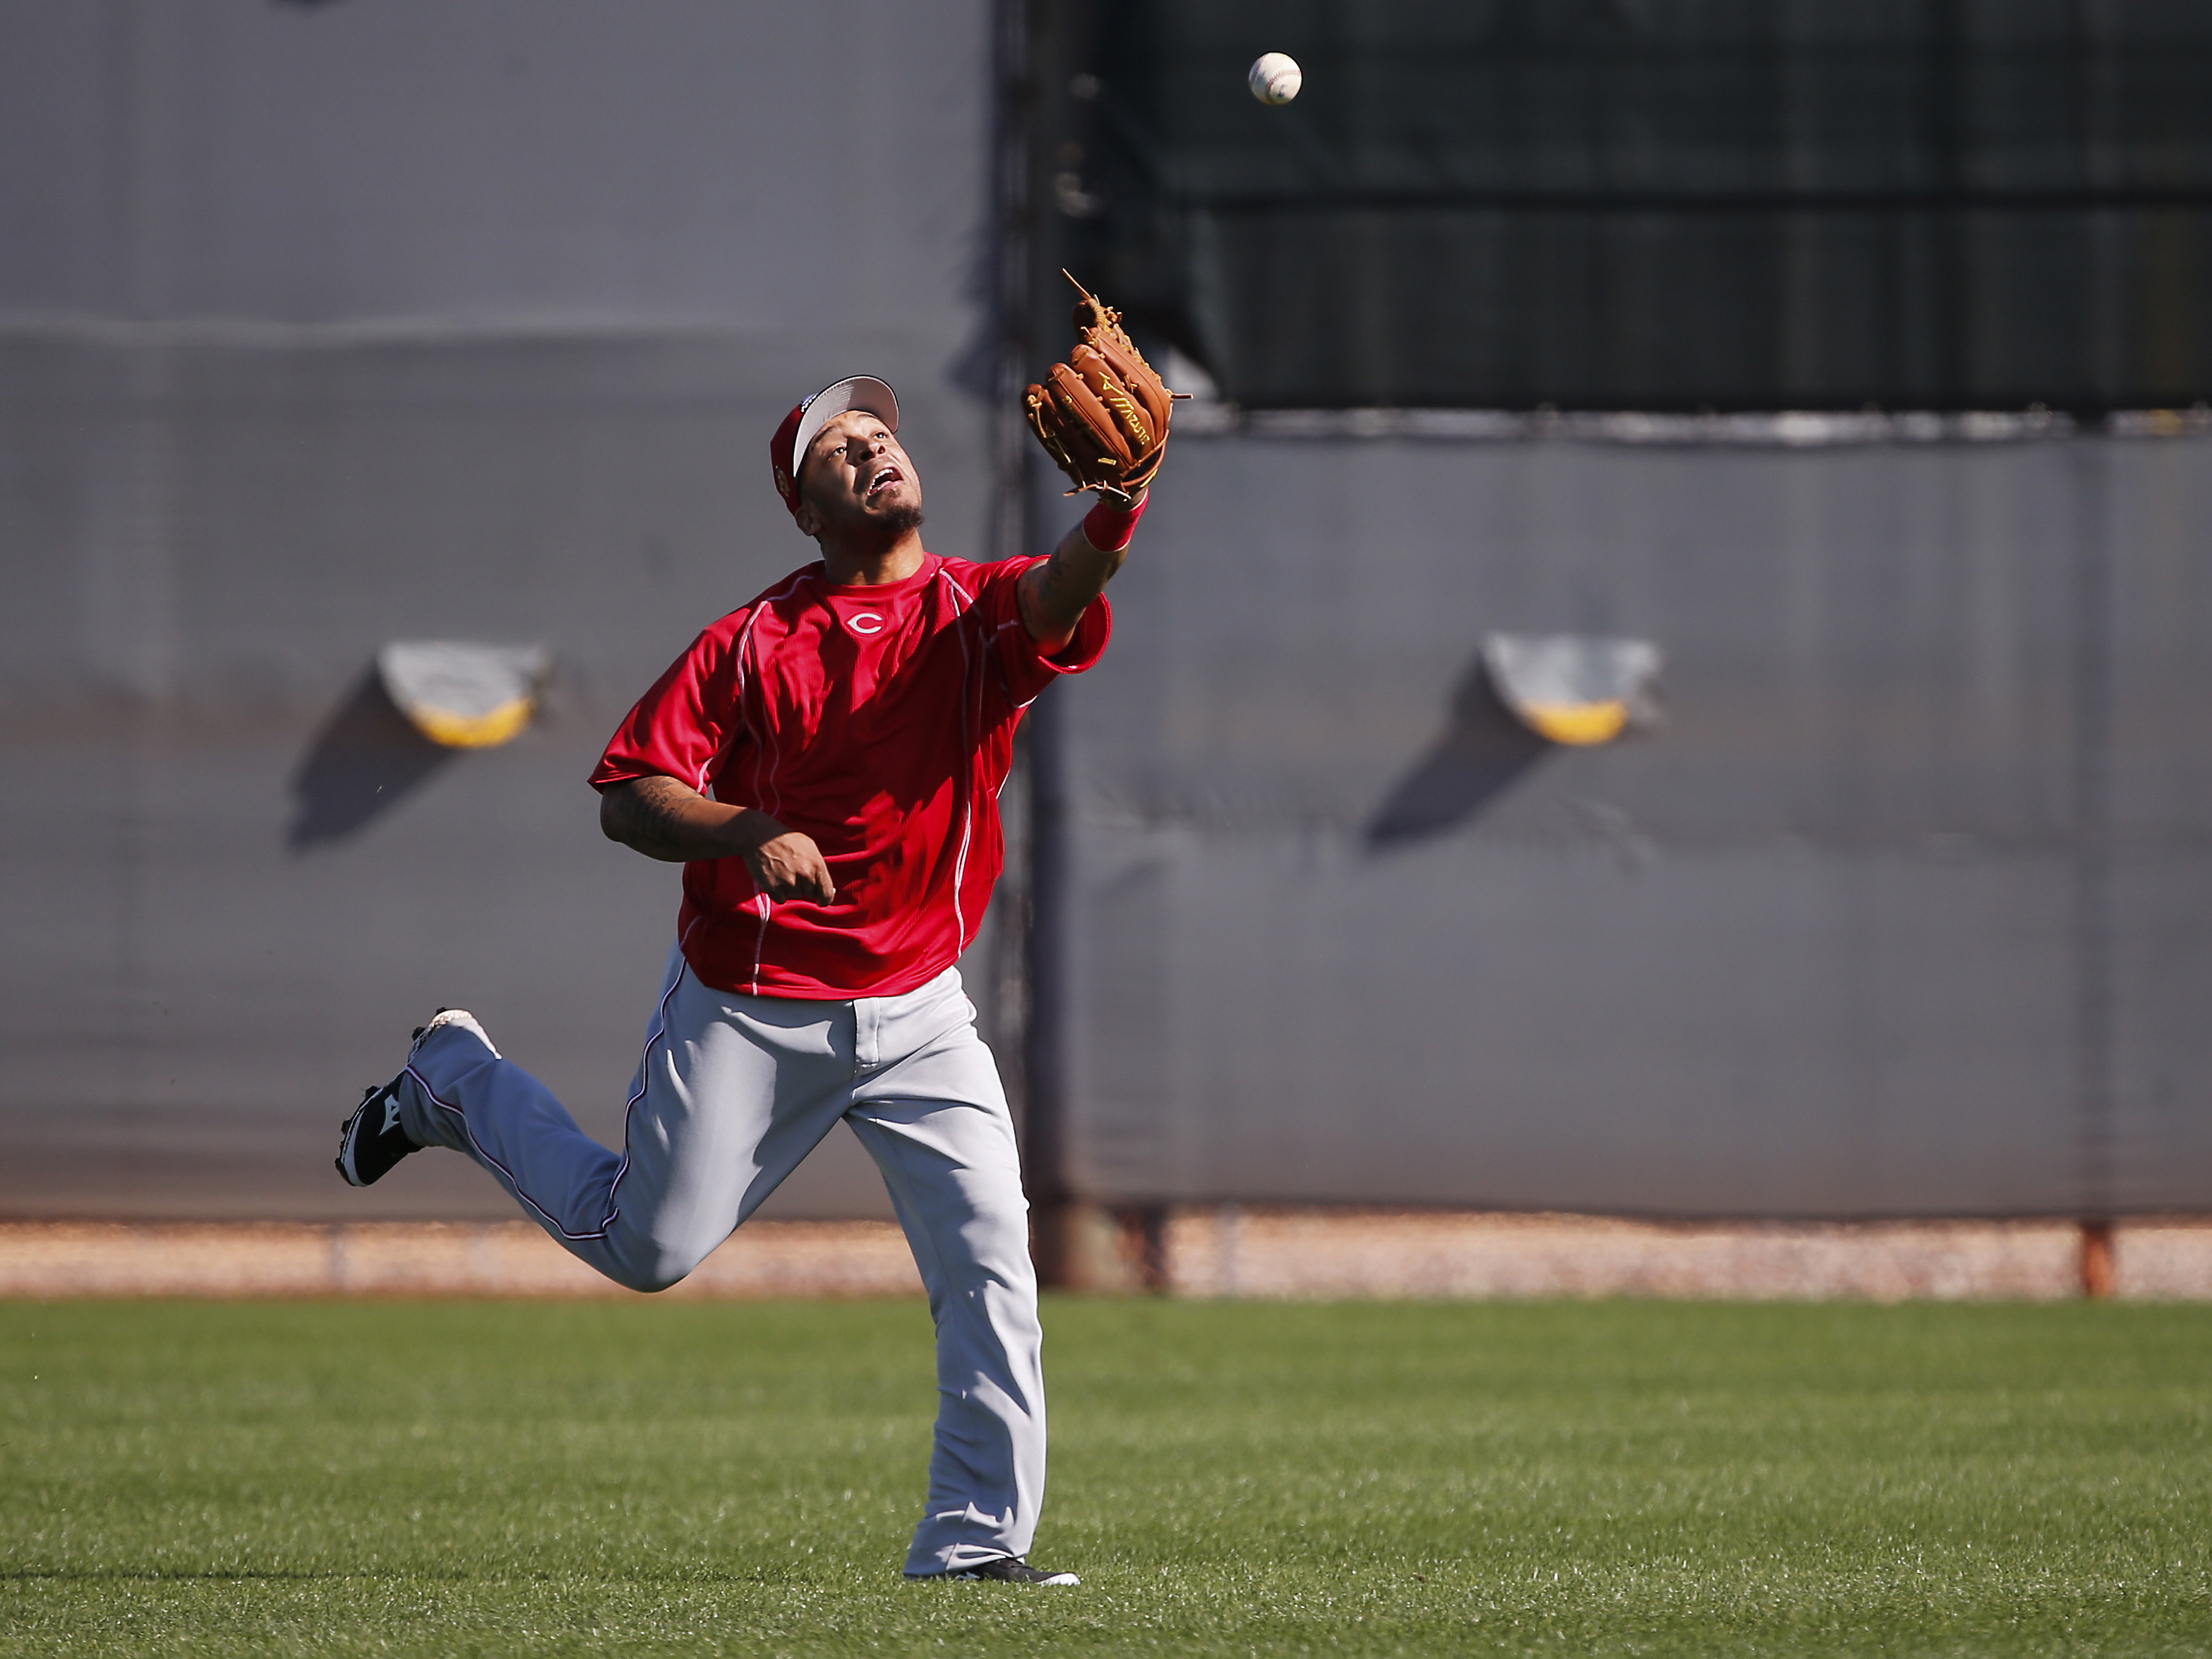 9890135-sports-cincinnati-reds-workouts